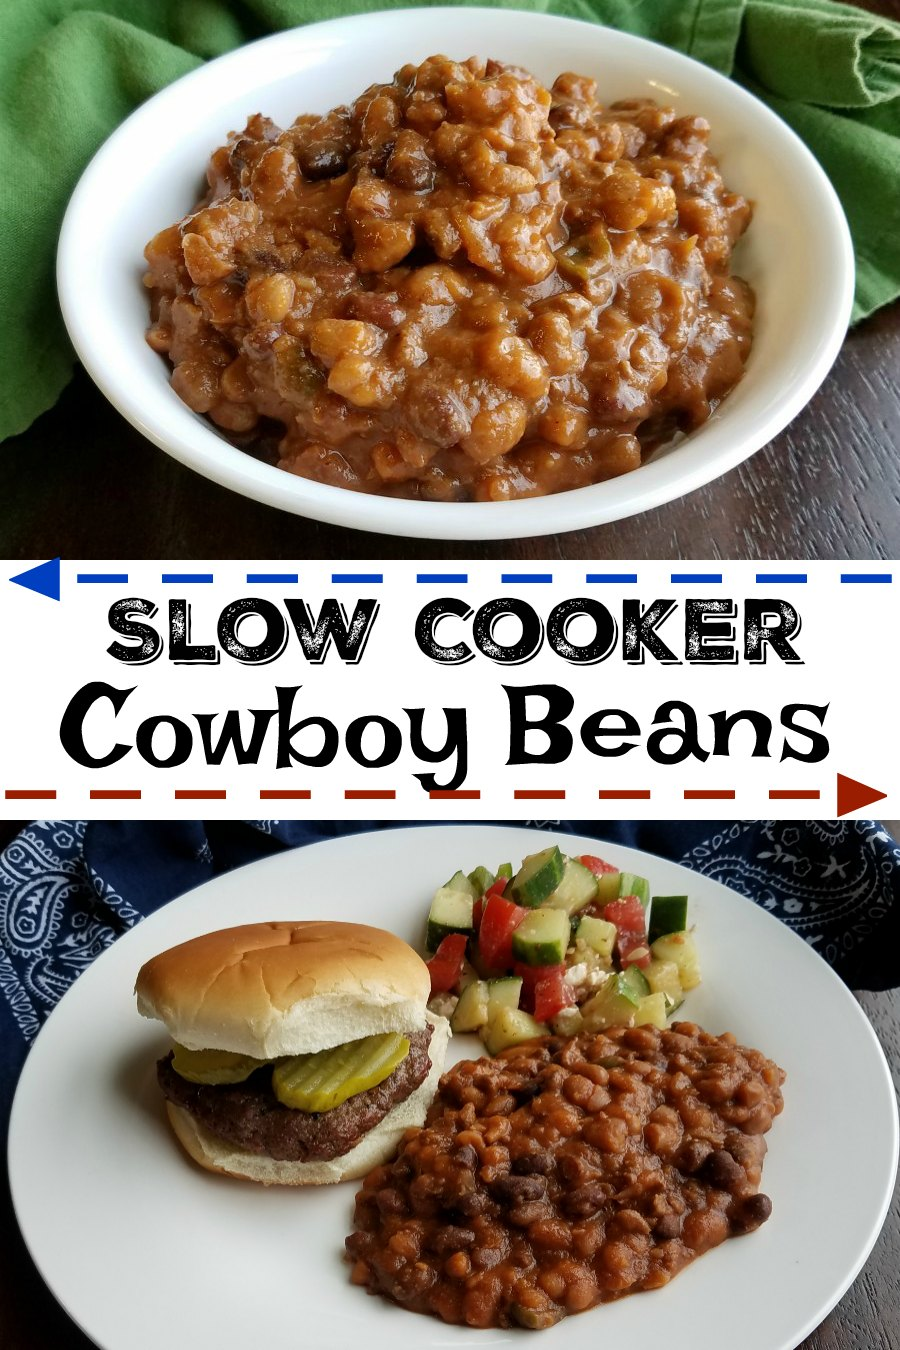 Nothing says summer bbq like some slow cooked beans. These meaty cowboy beans have a thick sauce that has the perfect balance of sweet and savory. They are a perfect side for potlucks, bbqs and carry ins too!